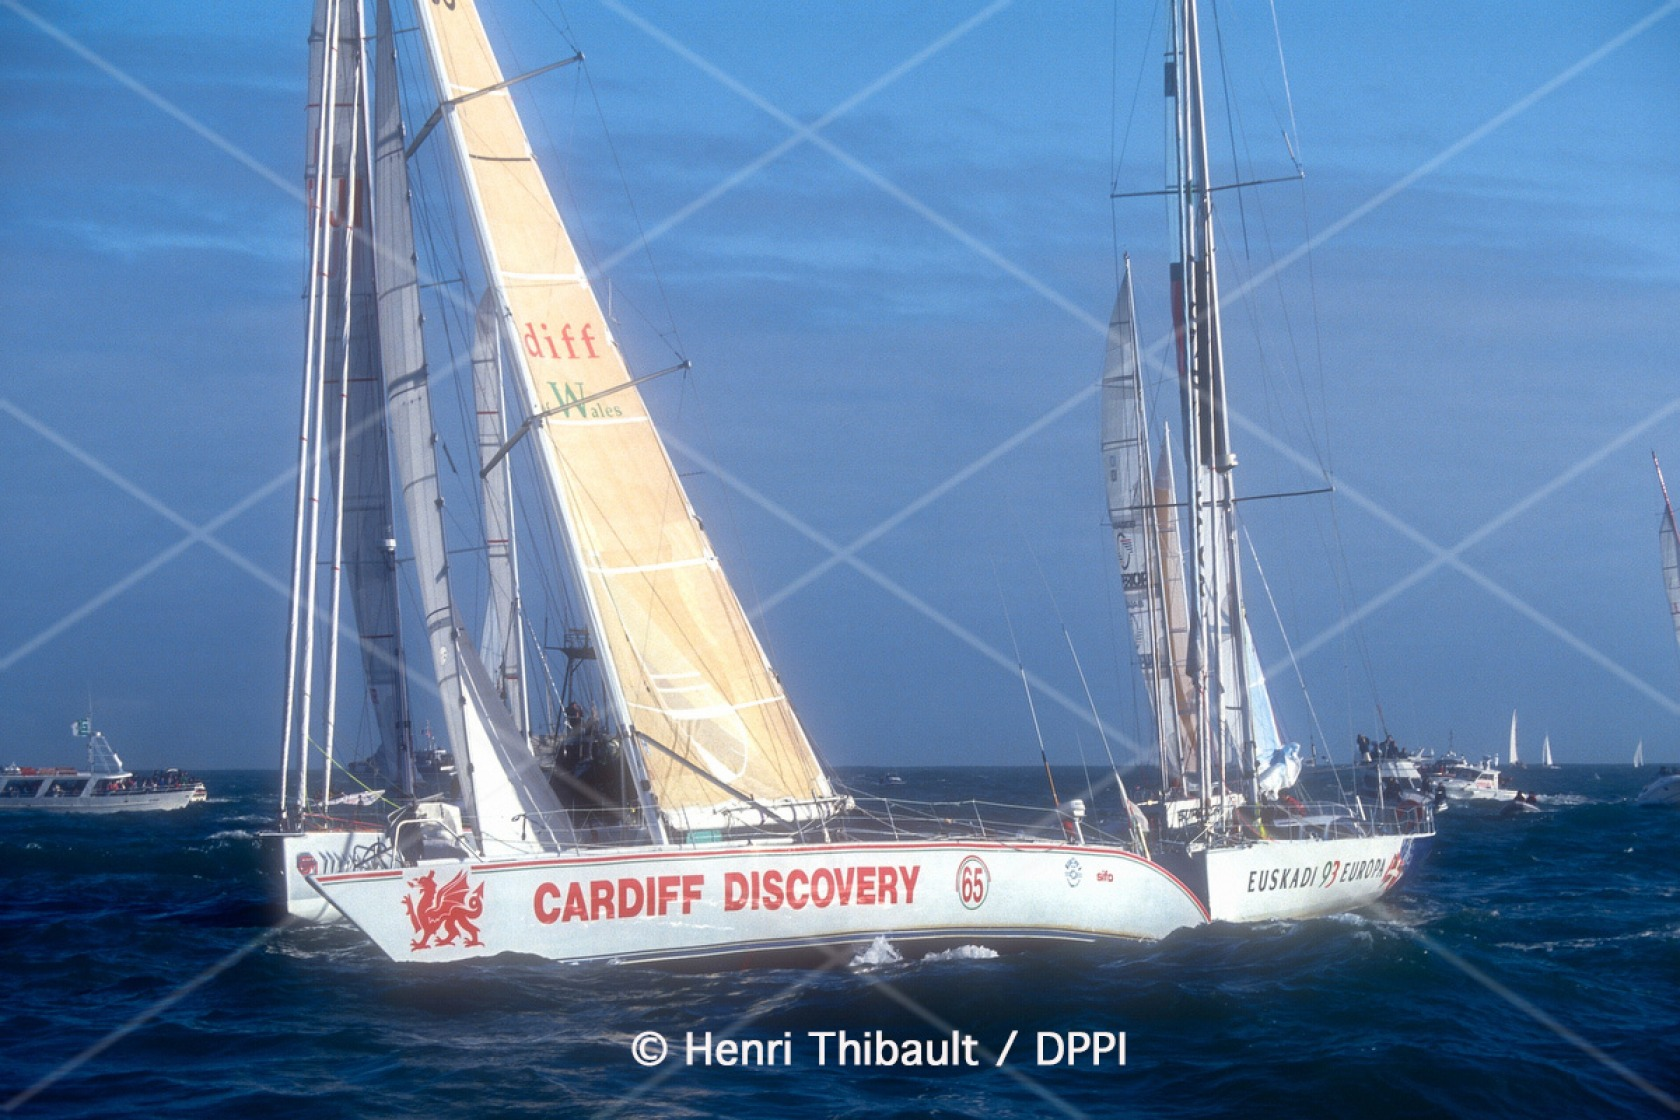 Start for Alan Wynne-Thomas, skipper Cardiff Discovery, DNF, during the Vendee Globe 1992-1993, in Les Sables d'Olonne, France, on november 22, 1992 - Photo Henri Thibault / DPPI